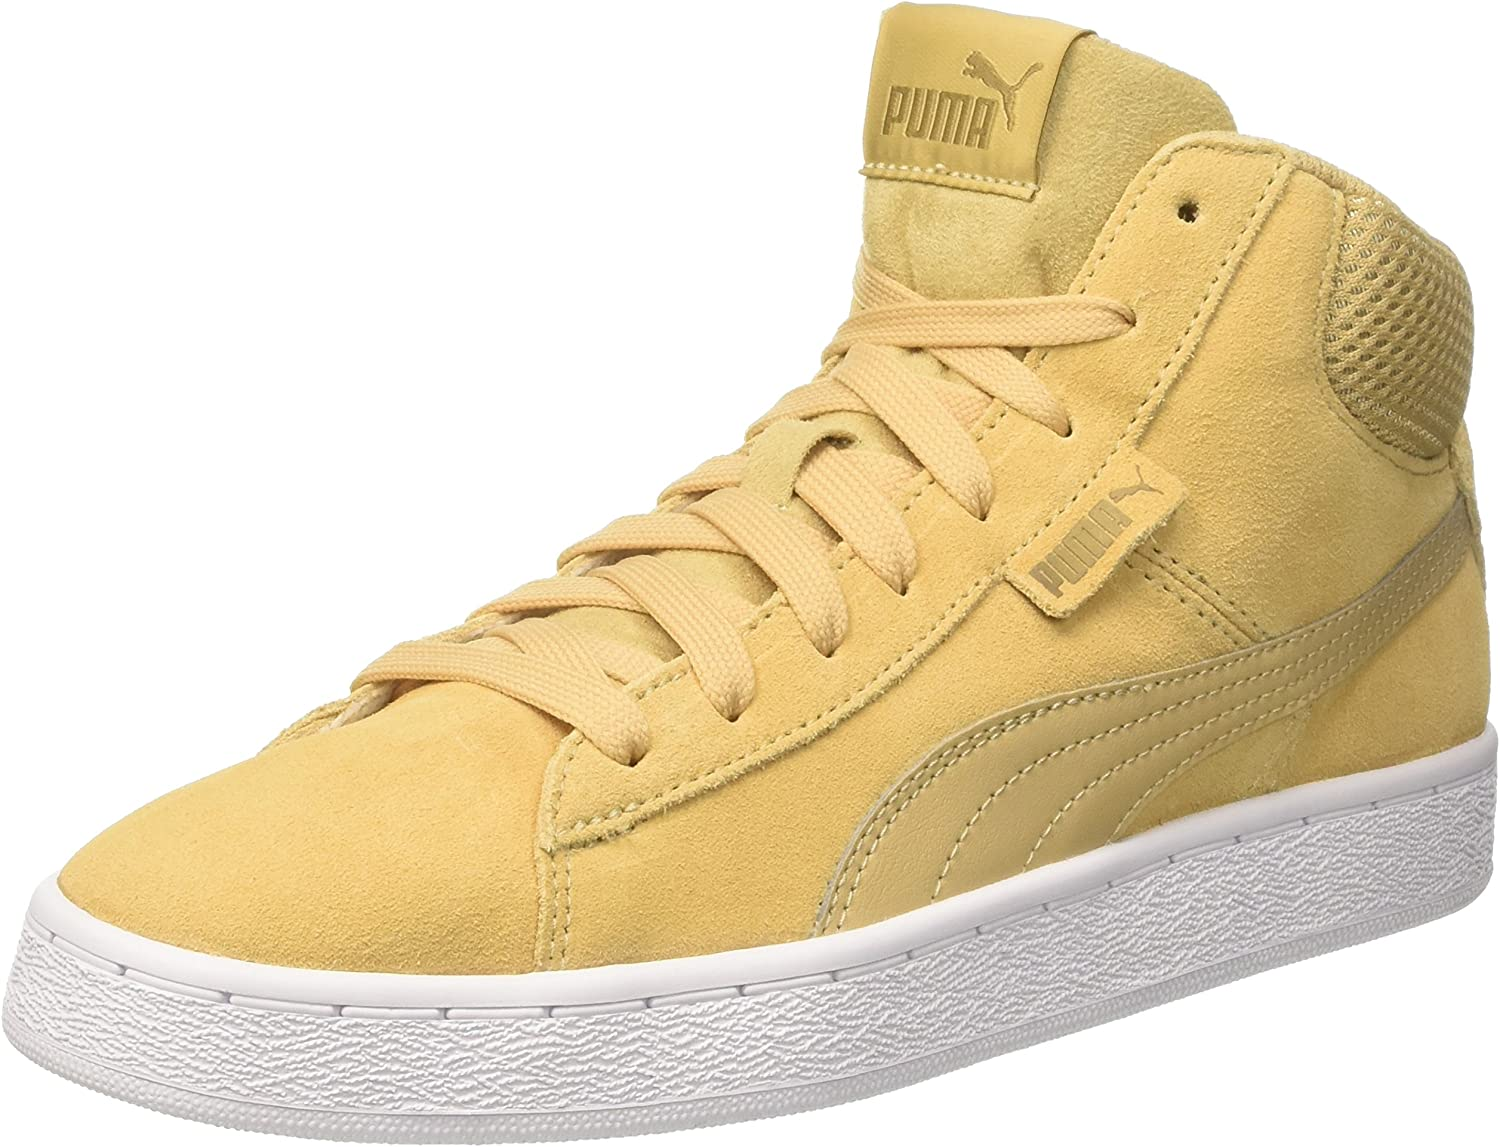 Puma Unisex Adults 1948 Mid Low-Top Sneakers